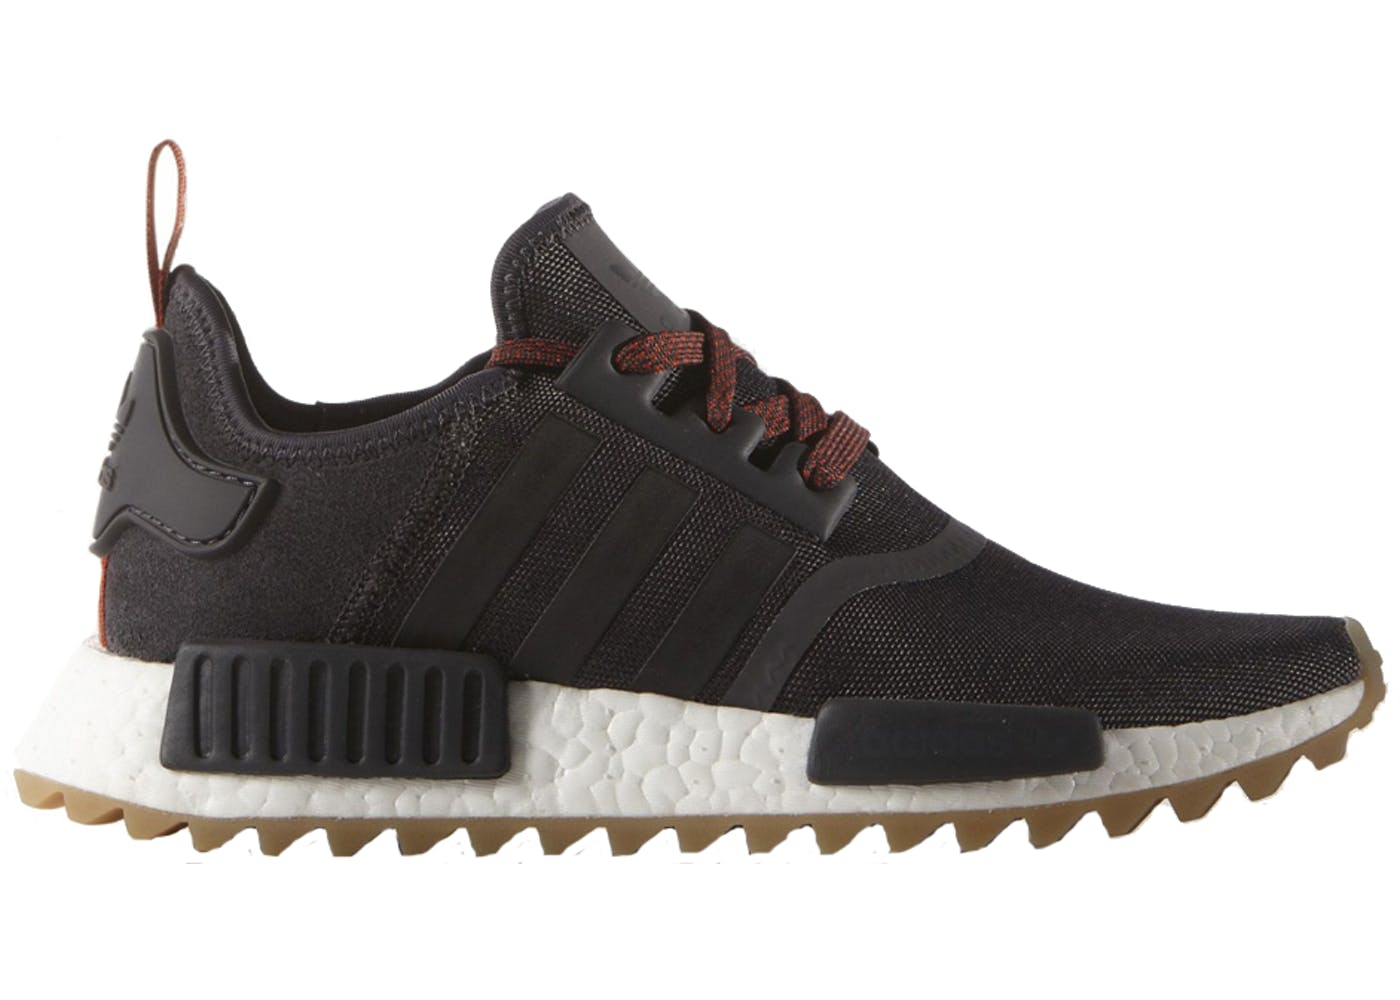 separation shoes e4daf 52611 Adidas NMD C1 x Porter CP9718 · Adidas Sneakers · Searchin